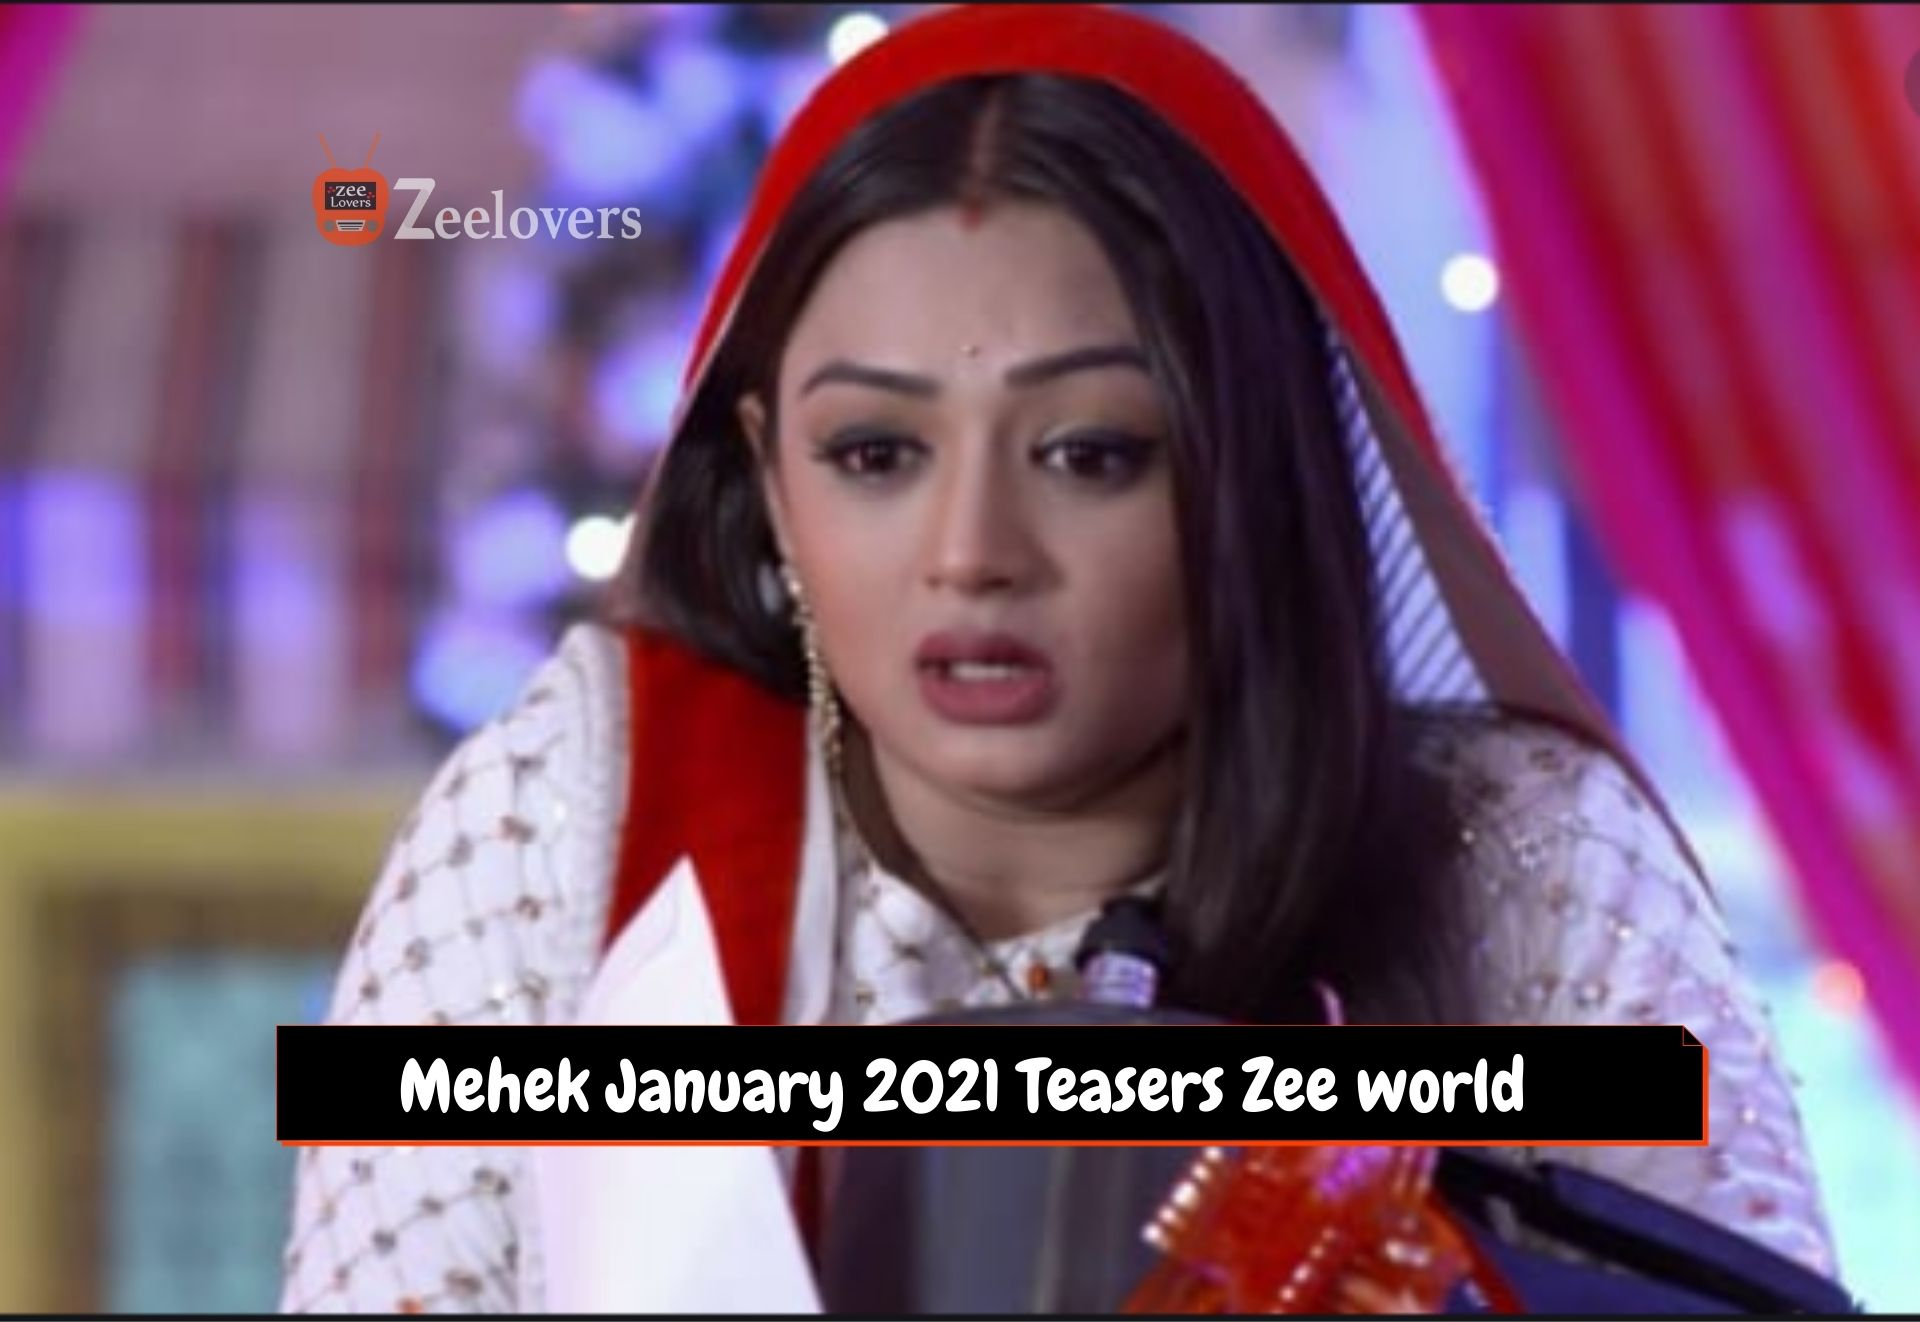 Mehek January 2021 Teasers